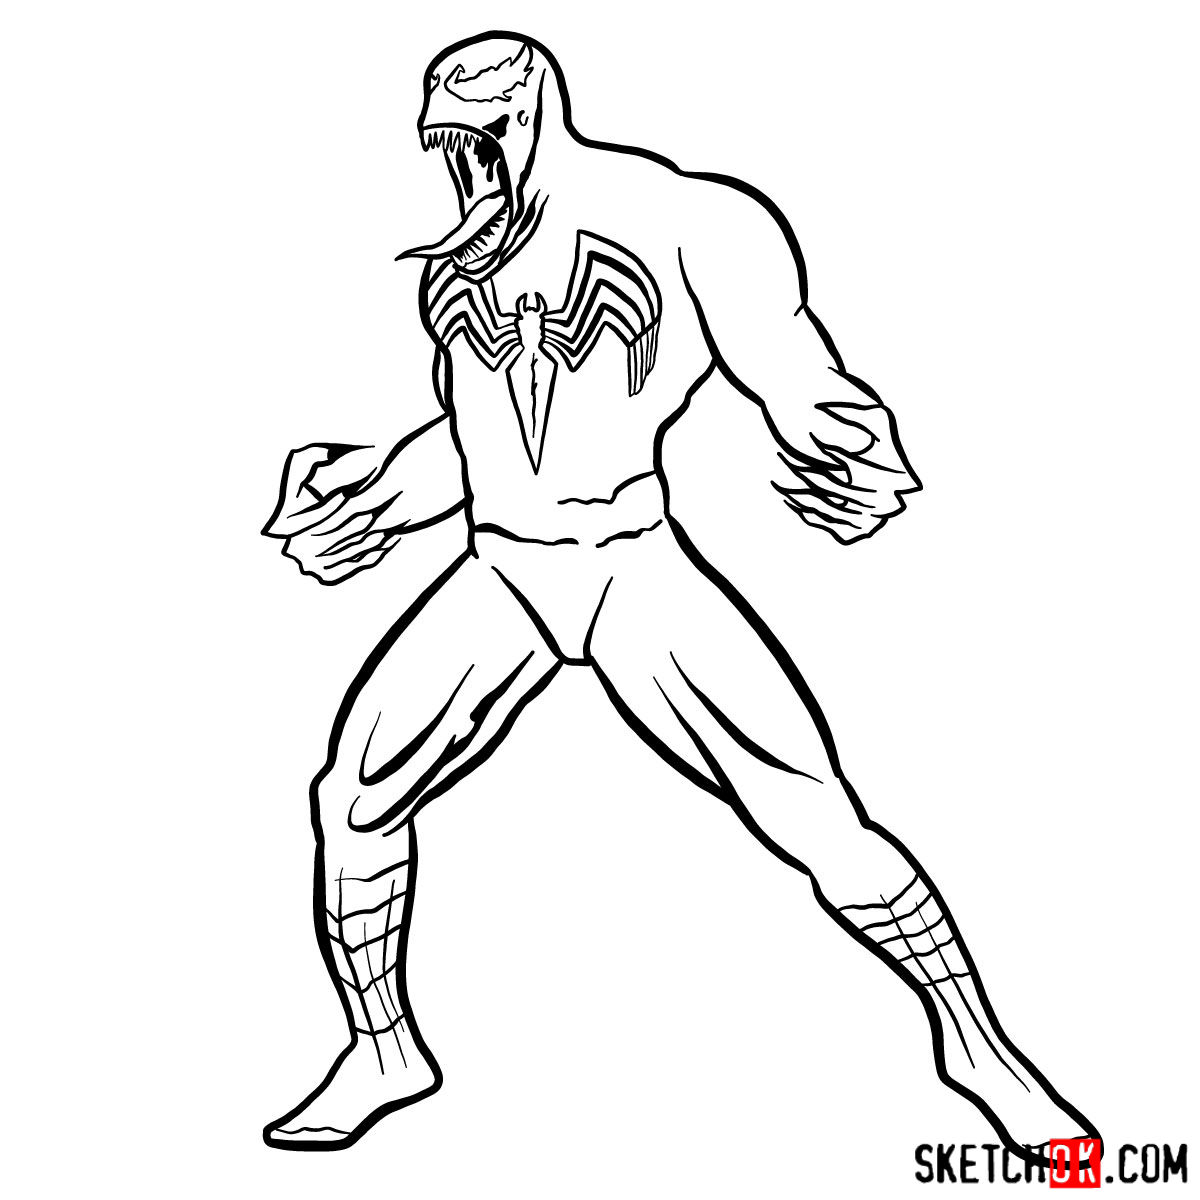 How to draw Venom symbiote step by step - step 12